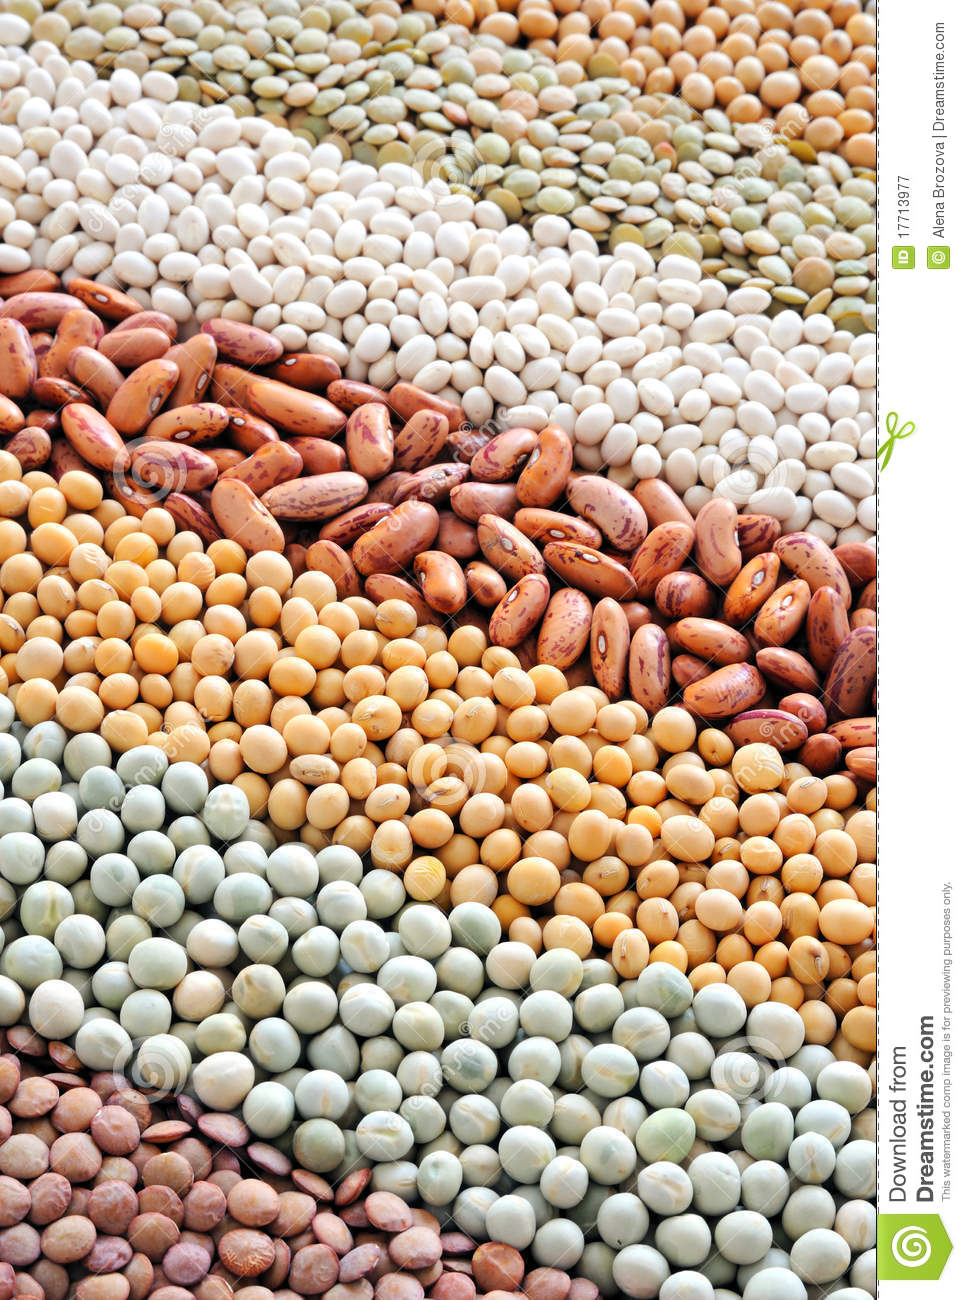 mixture of dried lentils  peas  soybeans  beans royalty free stock photography